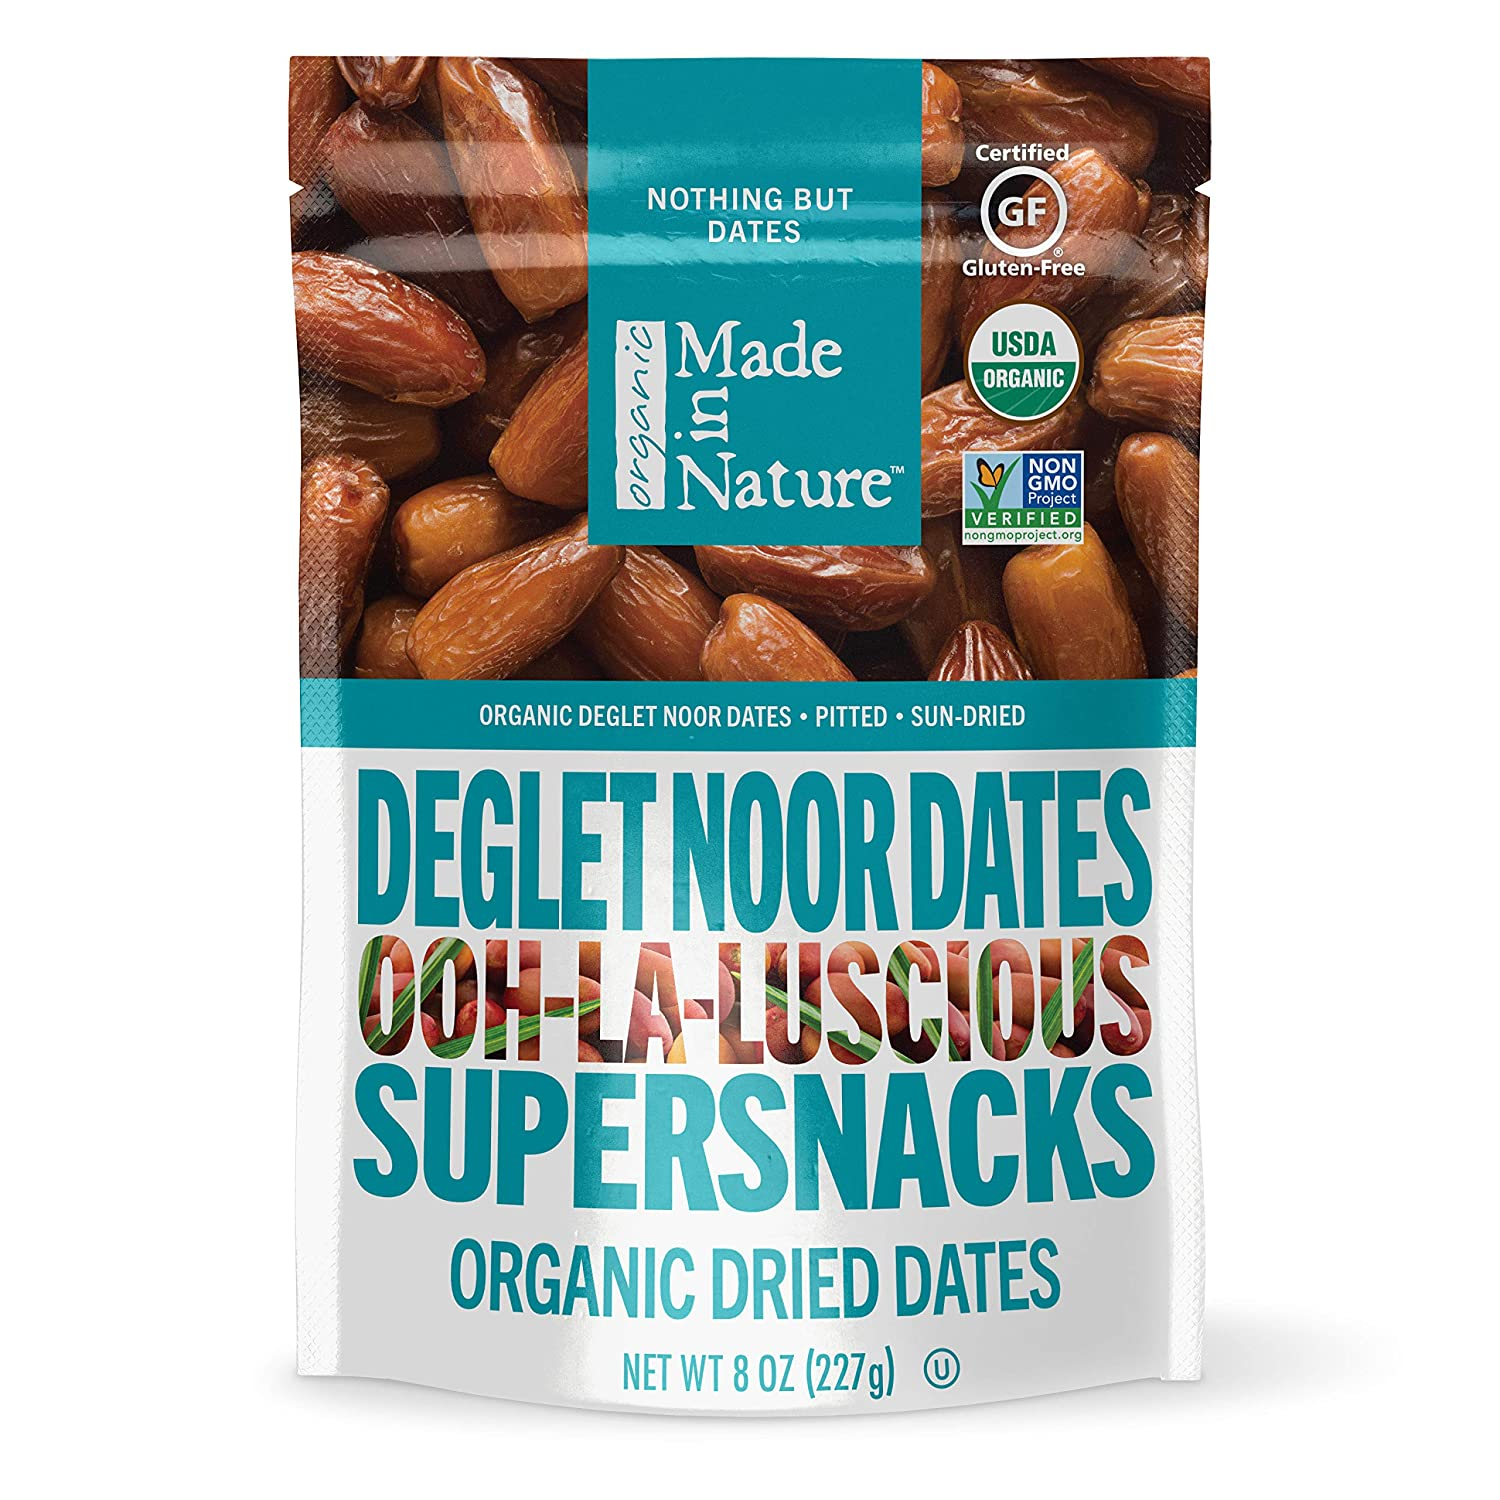 Made In Nature Organic Dried Dates, 6 oz (Pack of 6) - Non-GMO Vegan Dried Fruit Snack